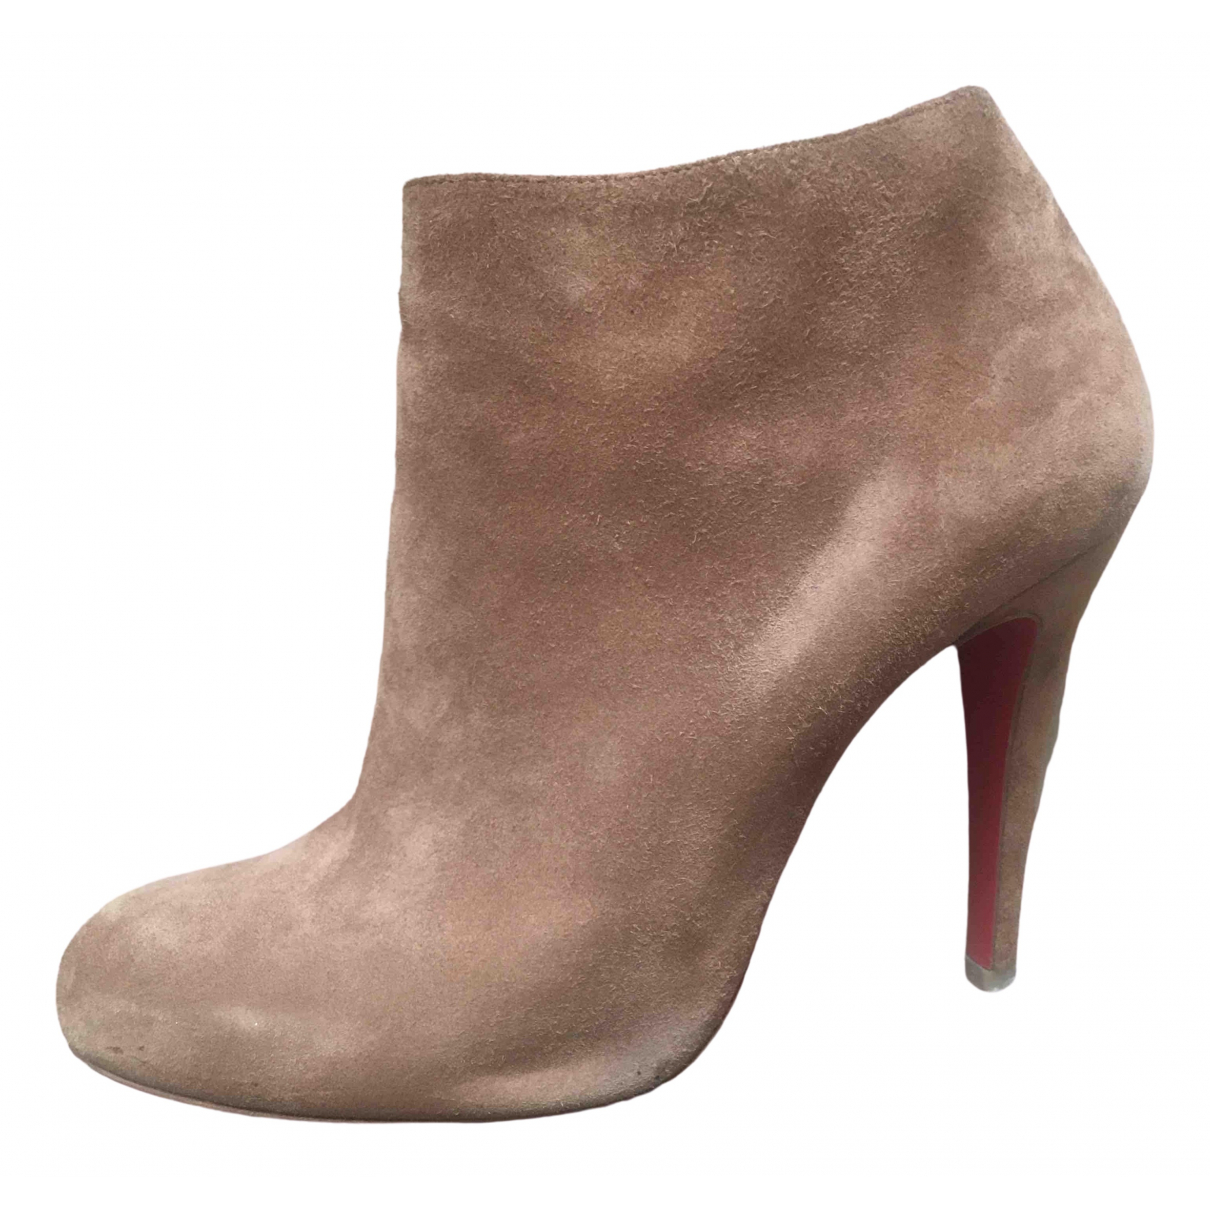 Christian Louboutin \N Camel Suede Ankle boots for Women 37 EU